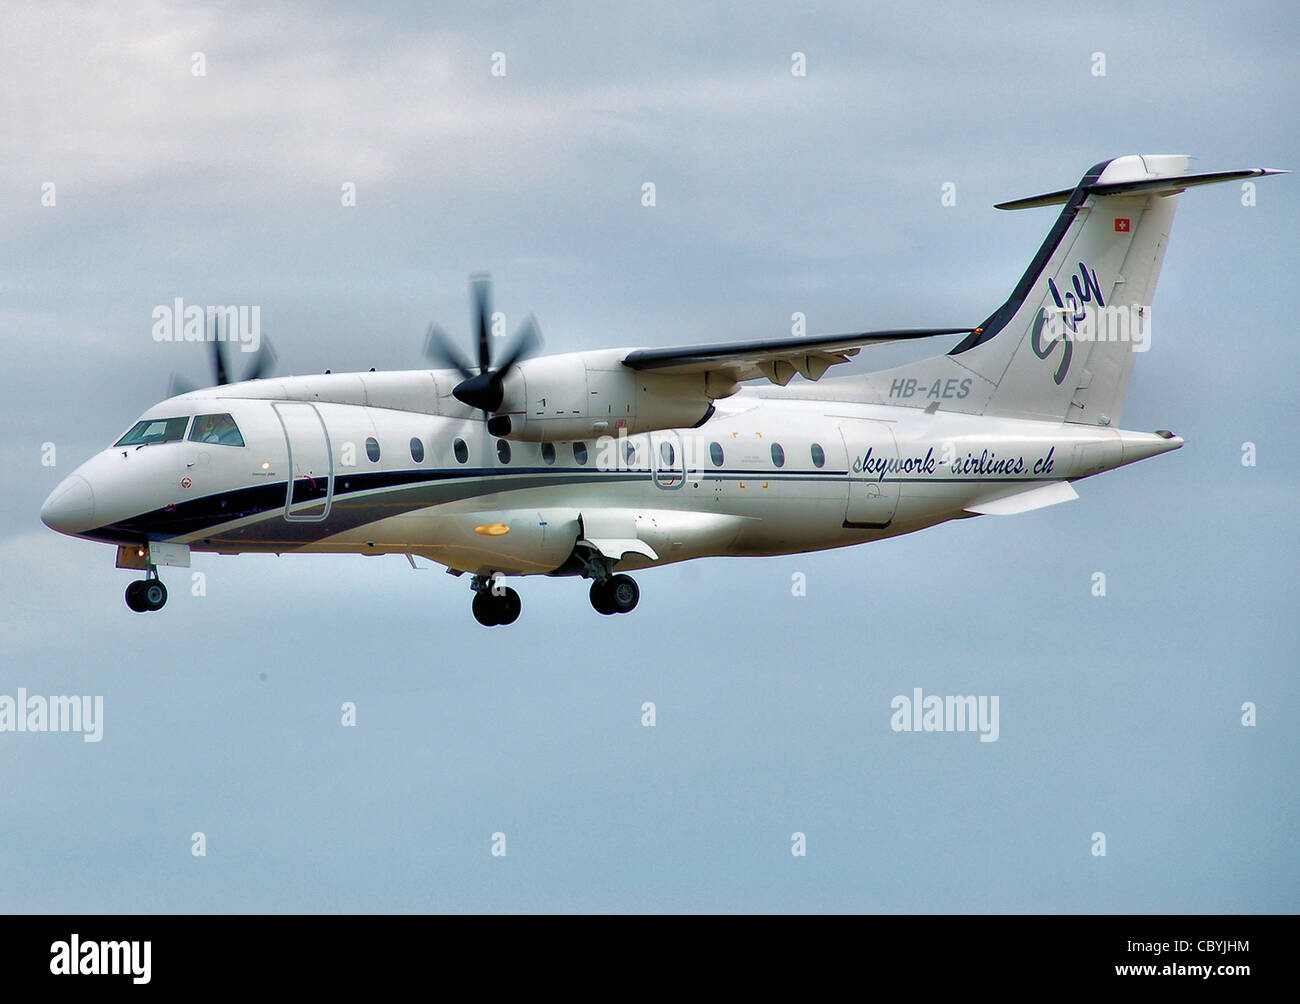 Sky Work Airlines Dornier 328-110 (Swiss registered HB-AES), operating for the Swiss Air Force - Stock Image